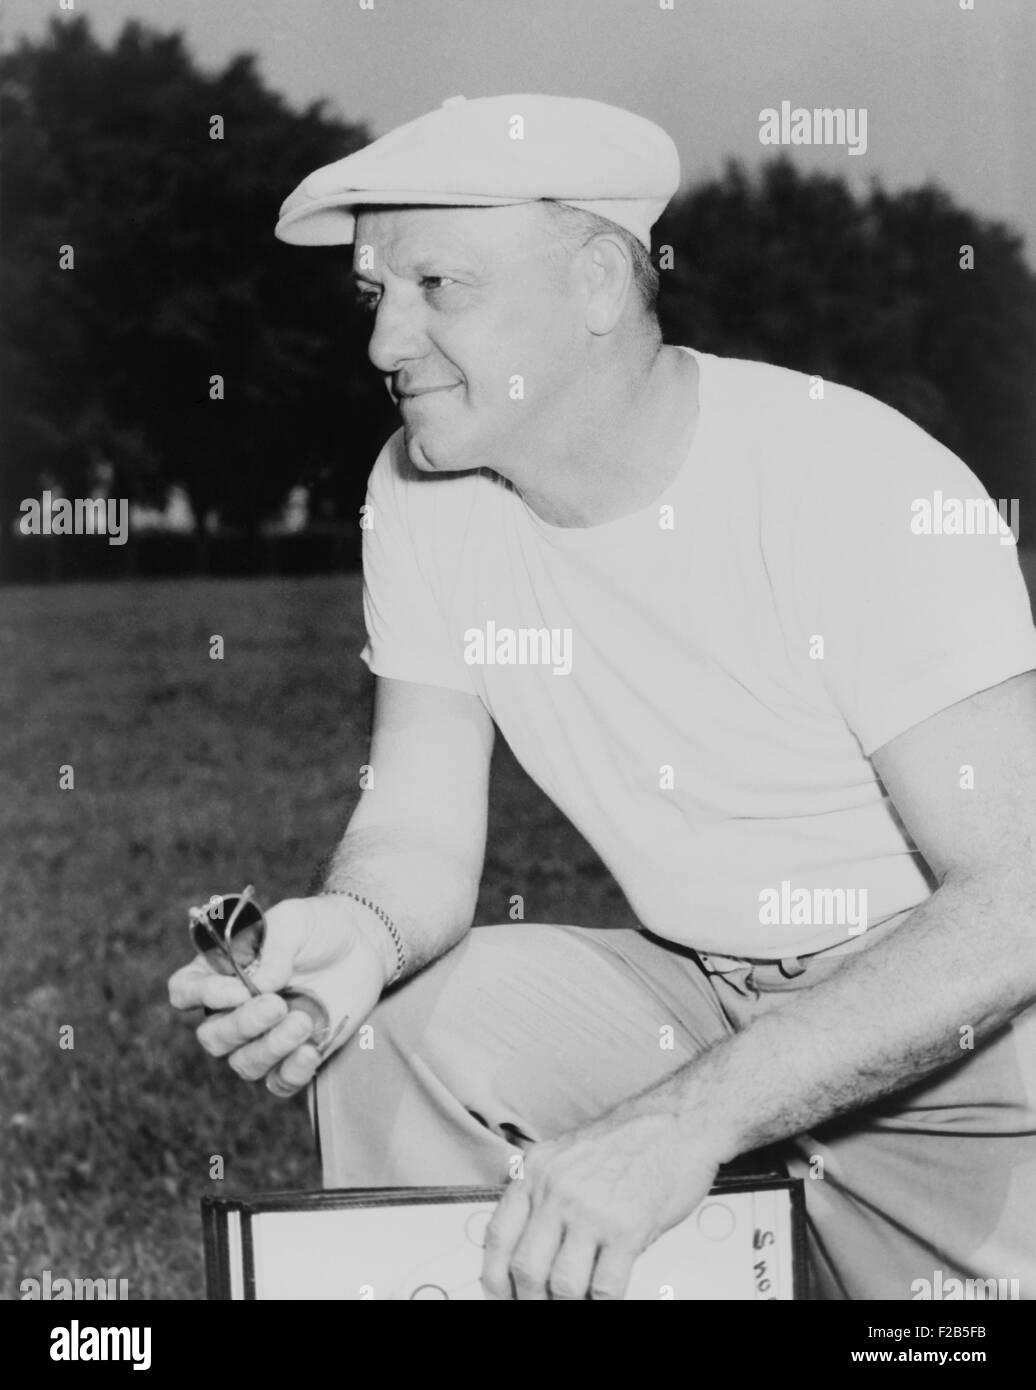 George Halas, founder and coach of the Chicago Bears in 1949. He was one of the original co-founders of the National - Stock Image